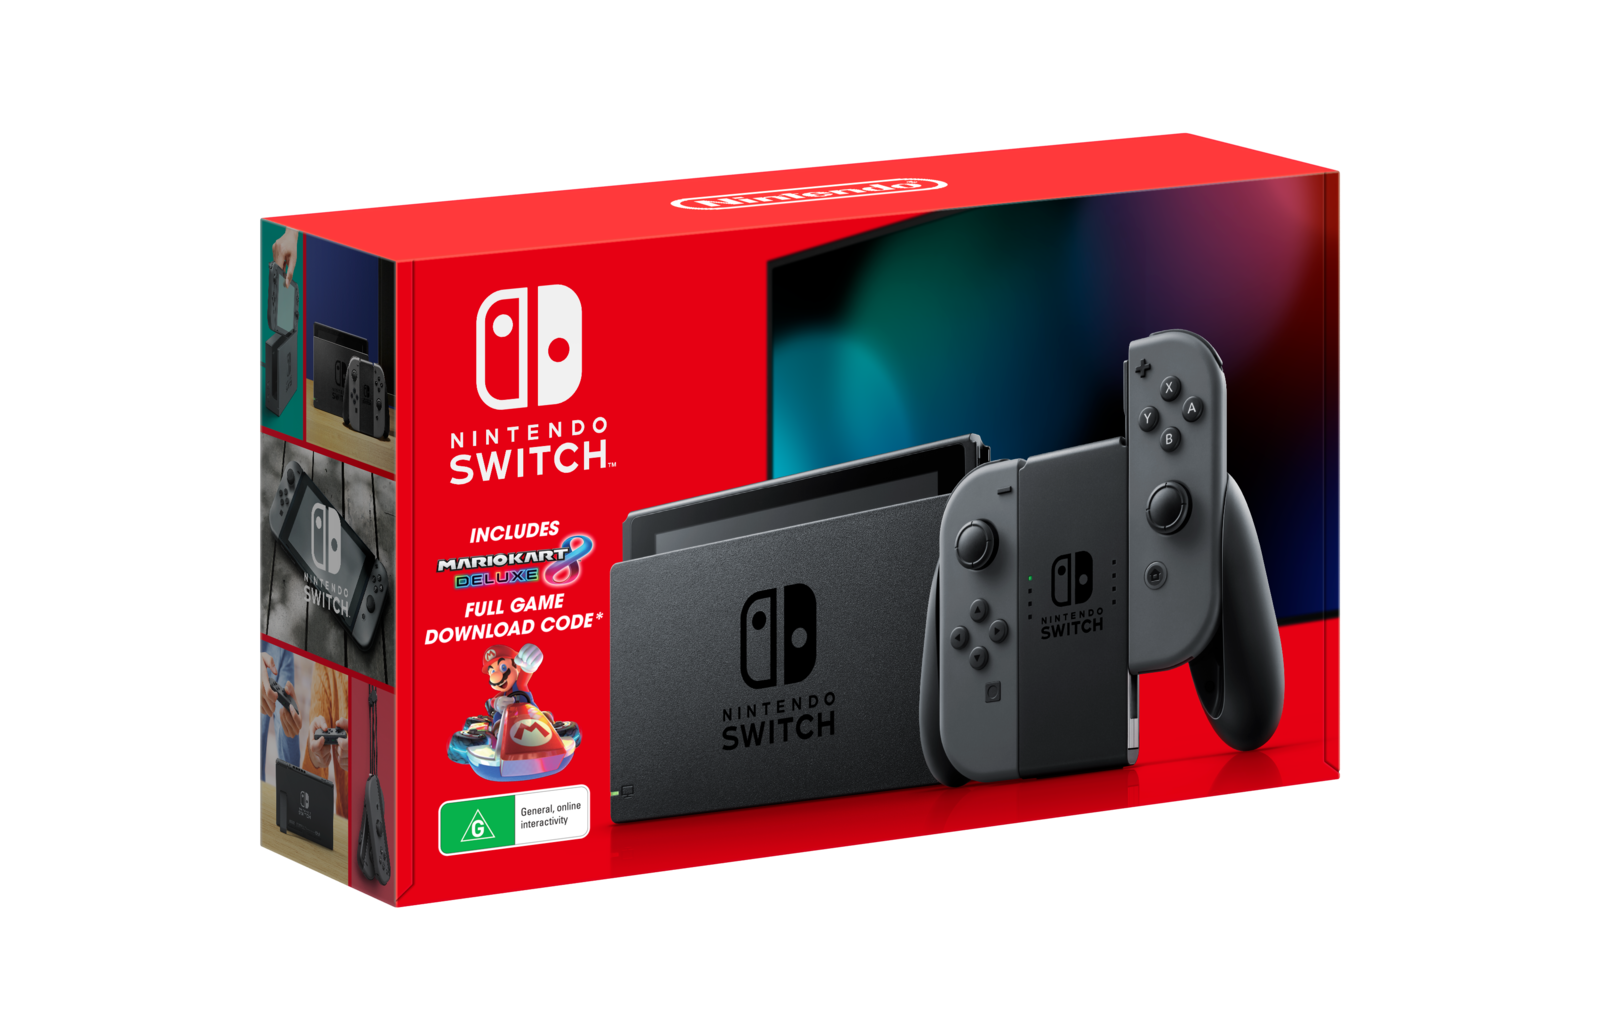 Nintendo Switch Mario Kart 8 Deluxe Grey Console Bundle for Switch image